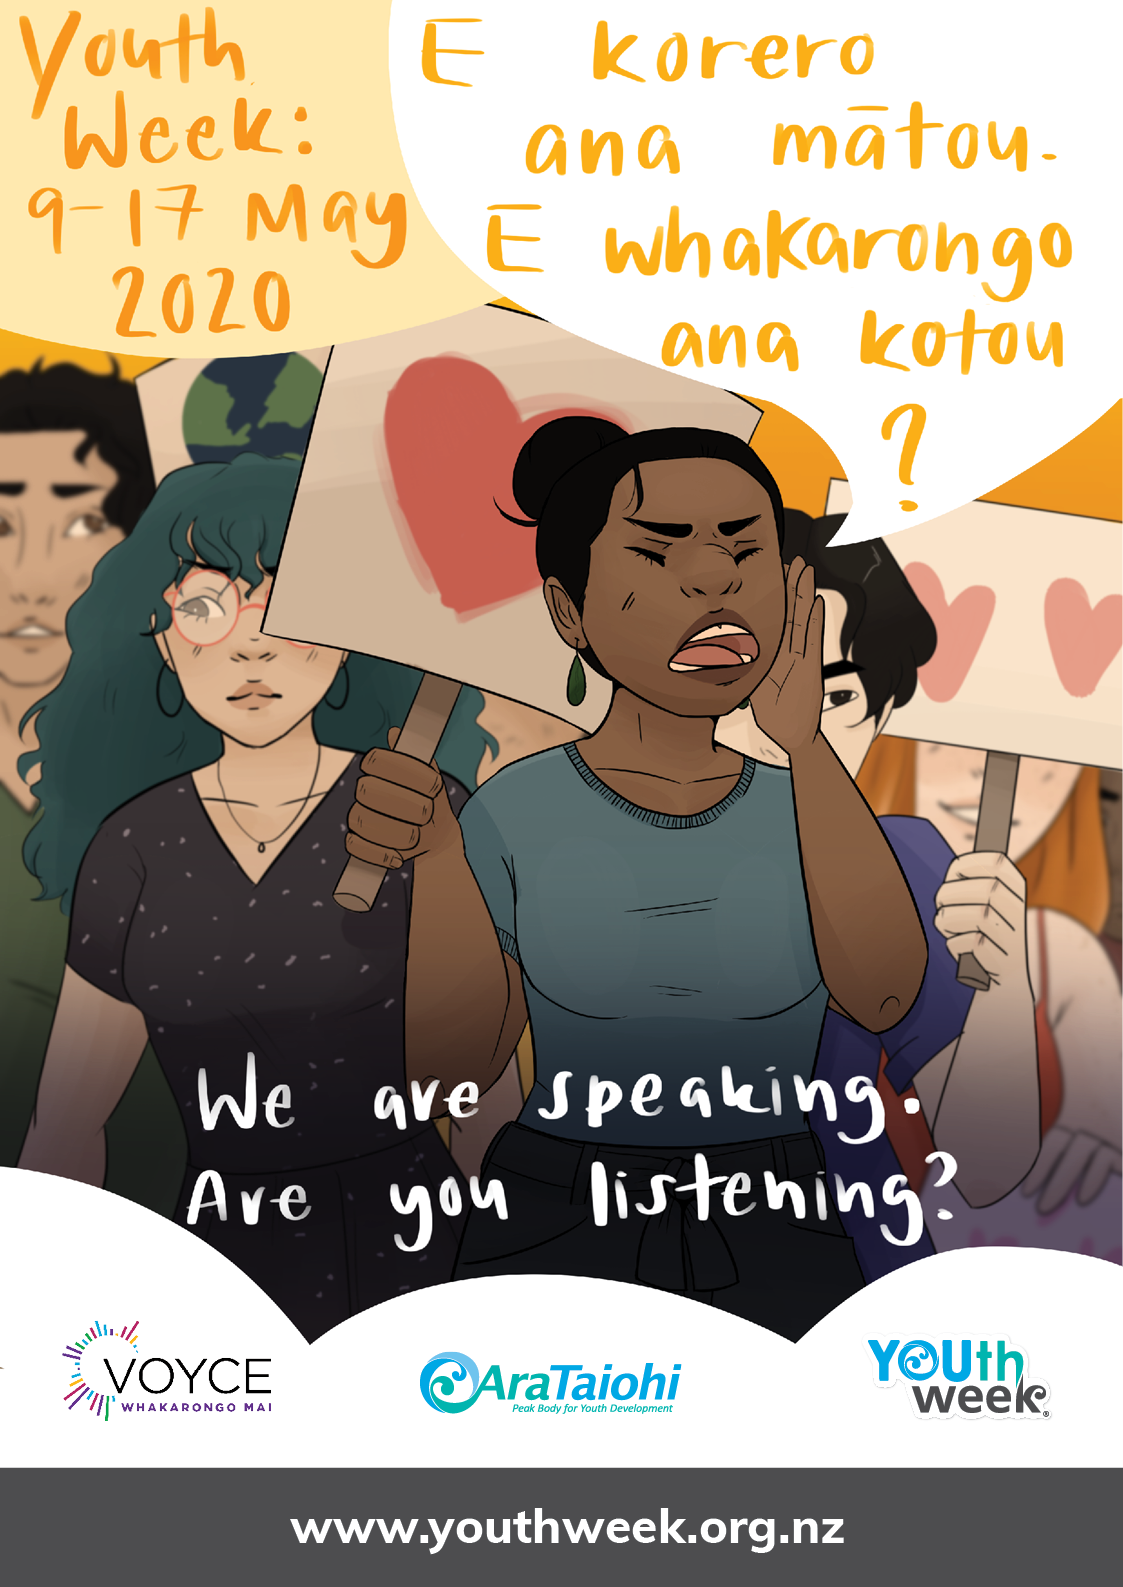 """young people are protesting and holding the placards with hearts on them, the lead young person is shouting out the theme: """"E korero ana mātou. E whakarongo ana koutou? We're speaking. Are you listening?"""""""